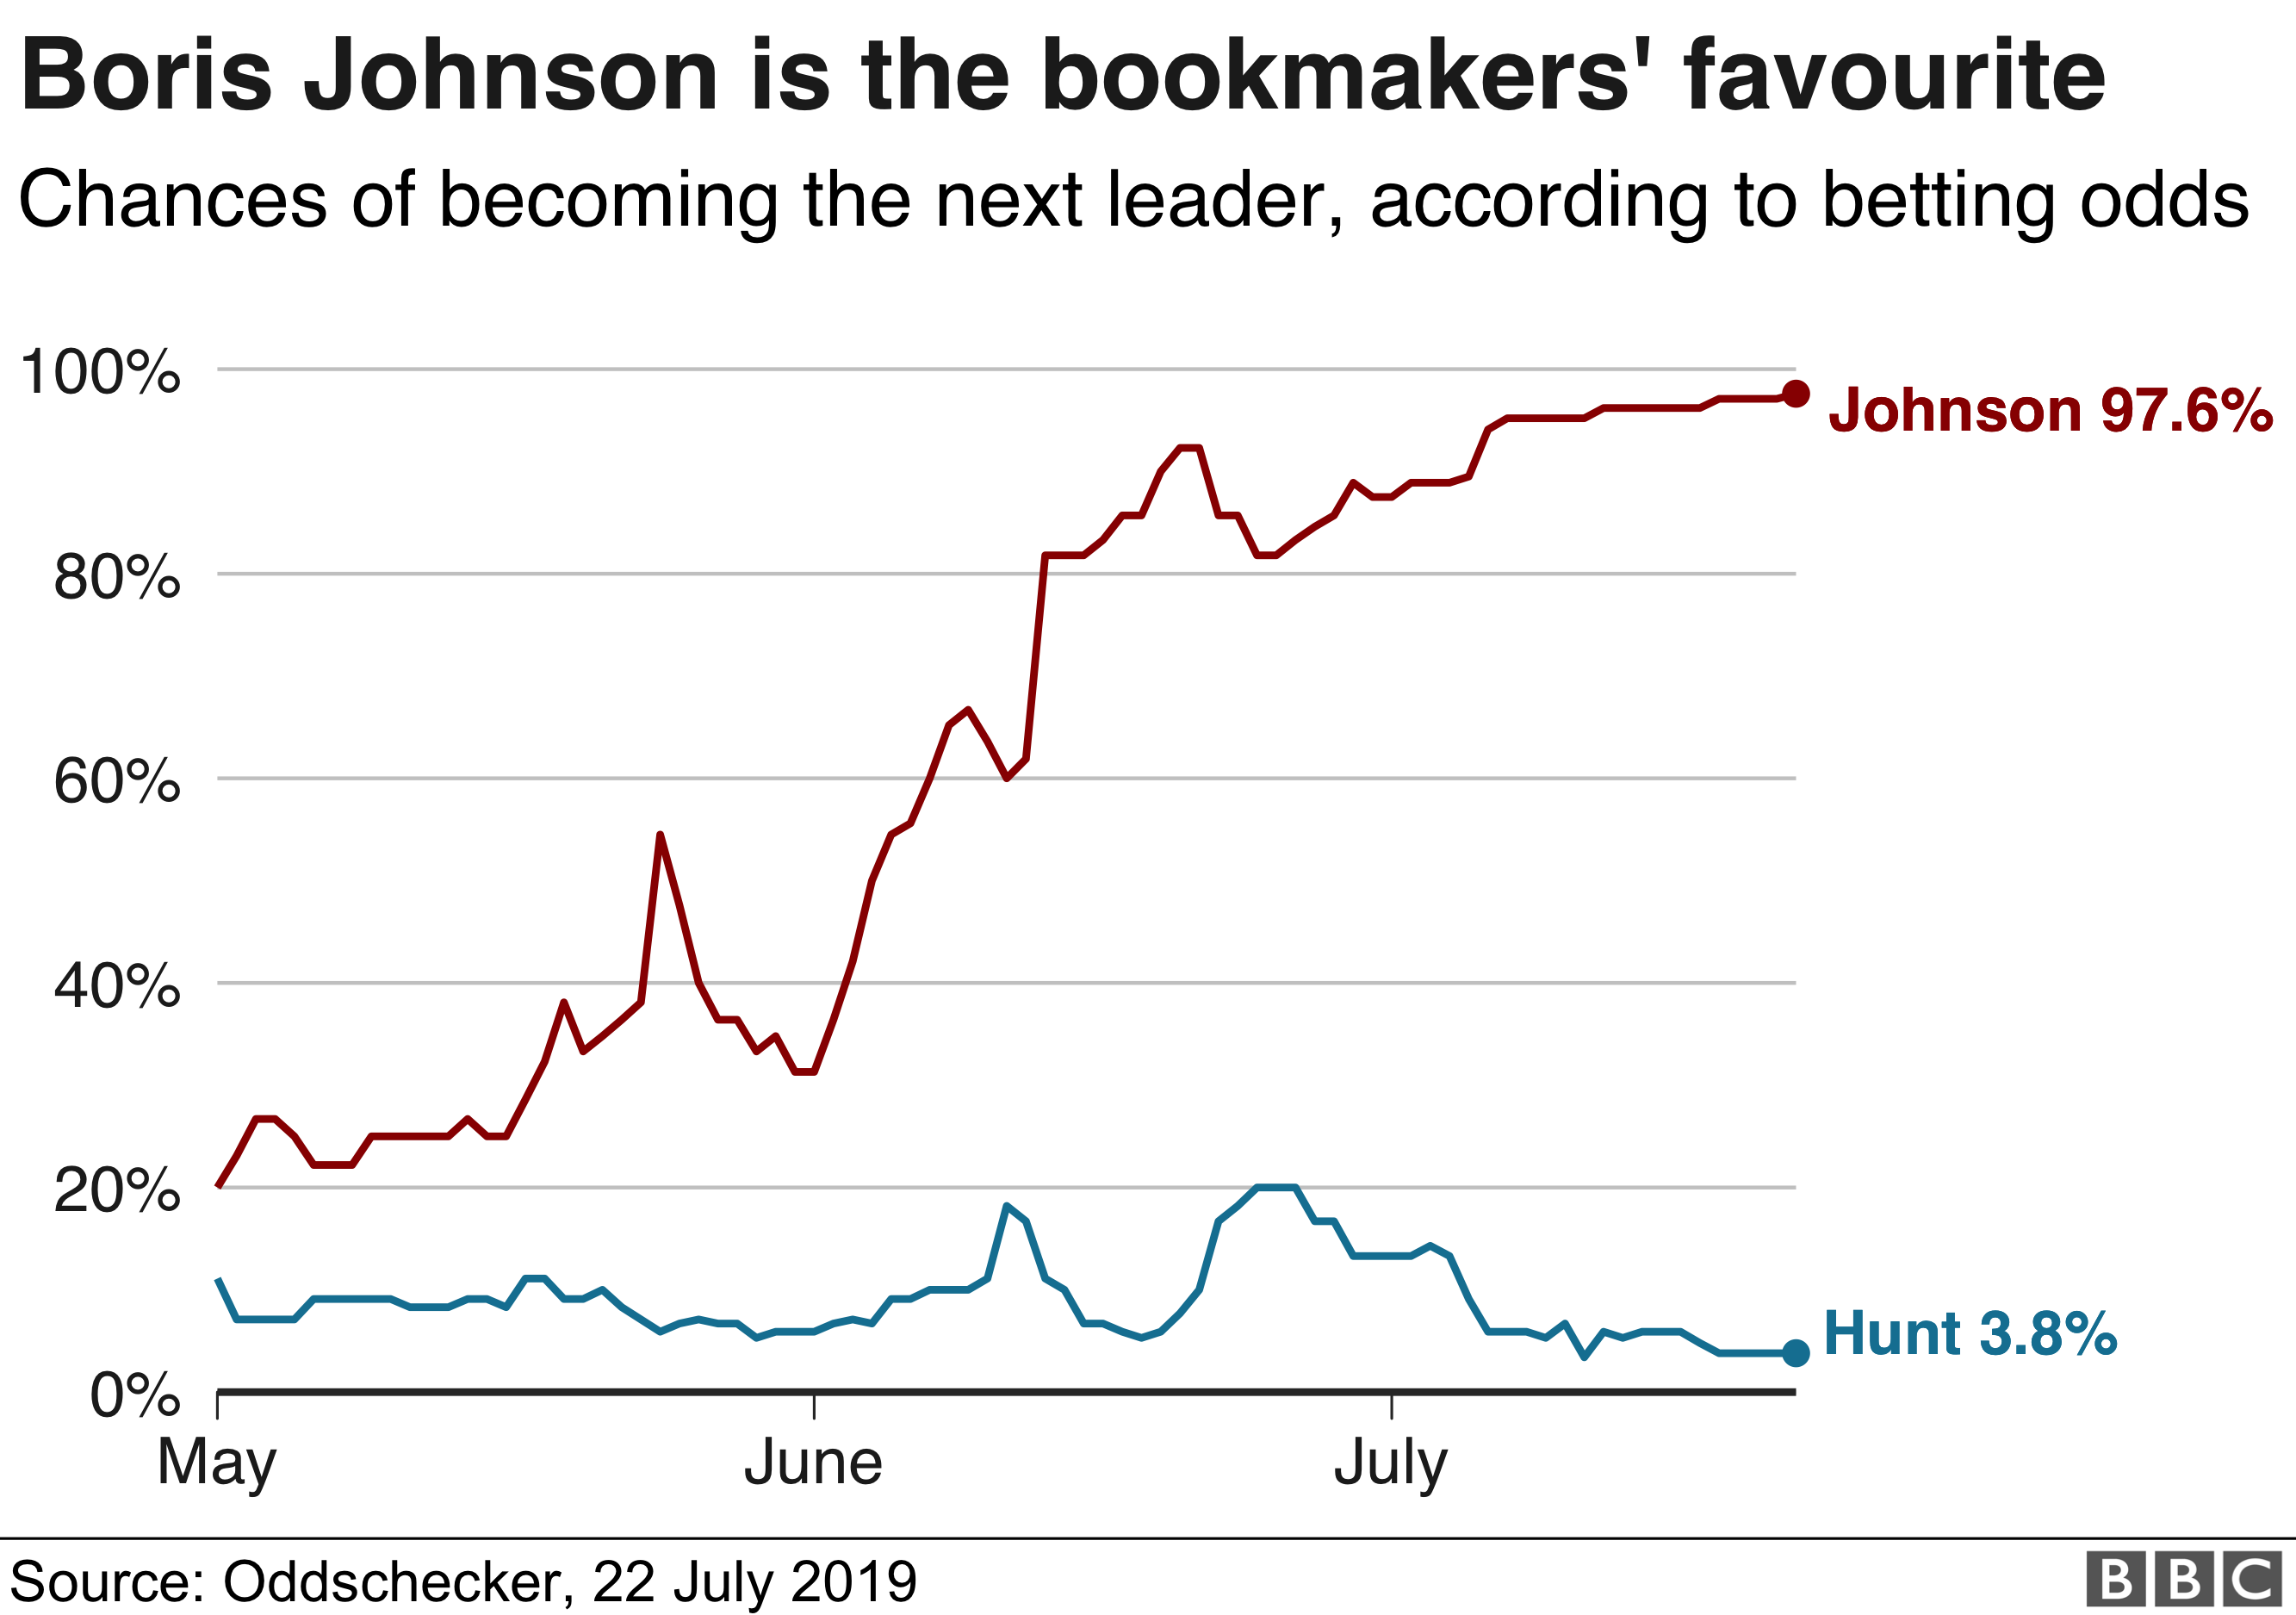 Line chart showing bookmakers' favourite is Boris Johnson on 97.6%, Hunt is on 3.8%